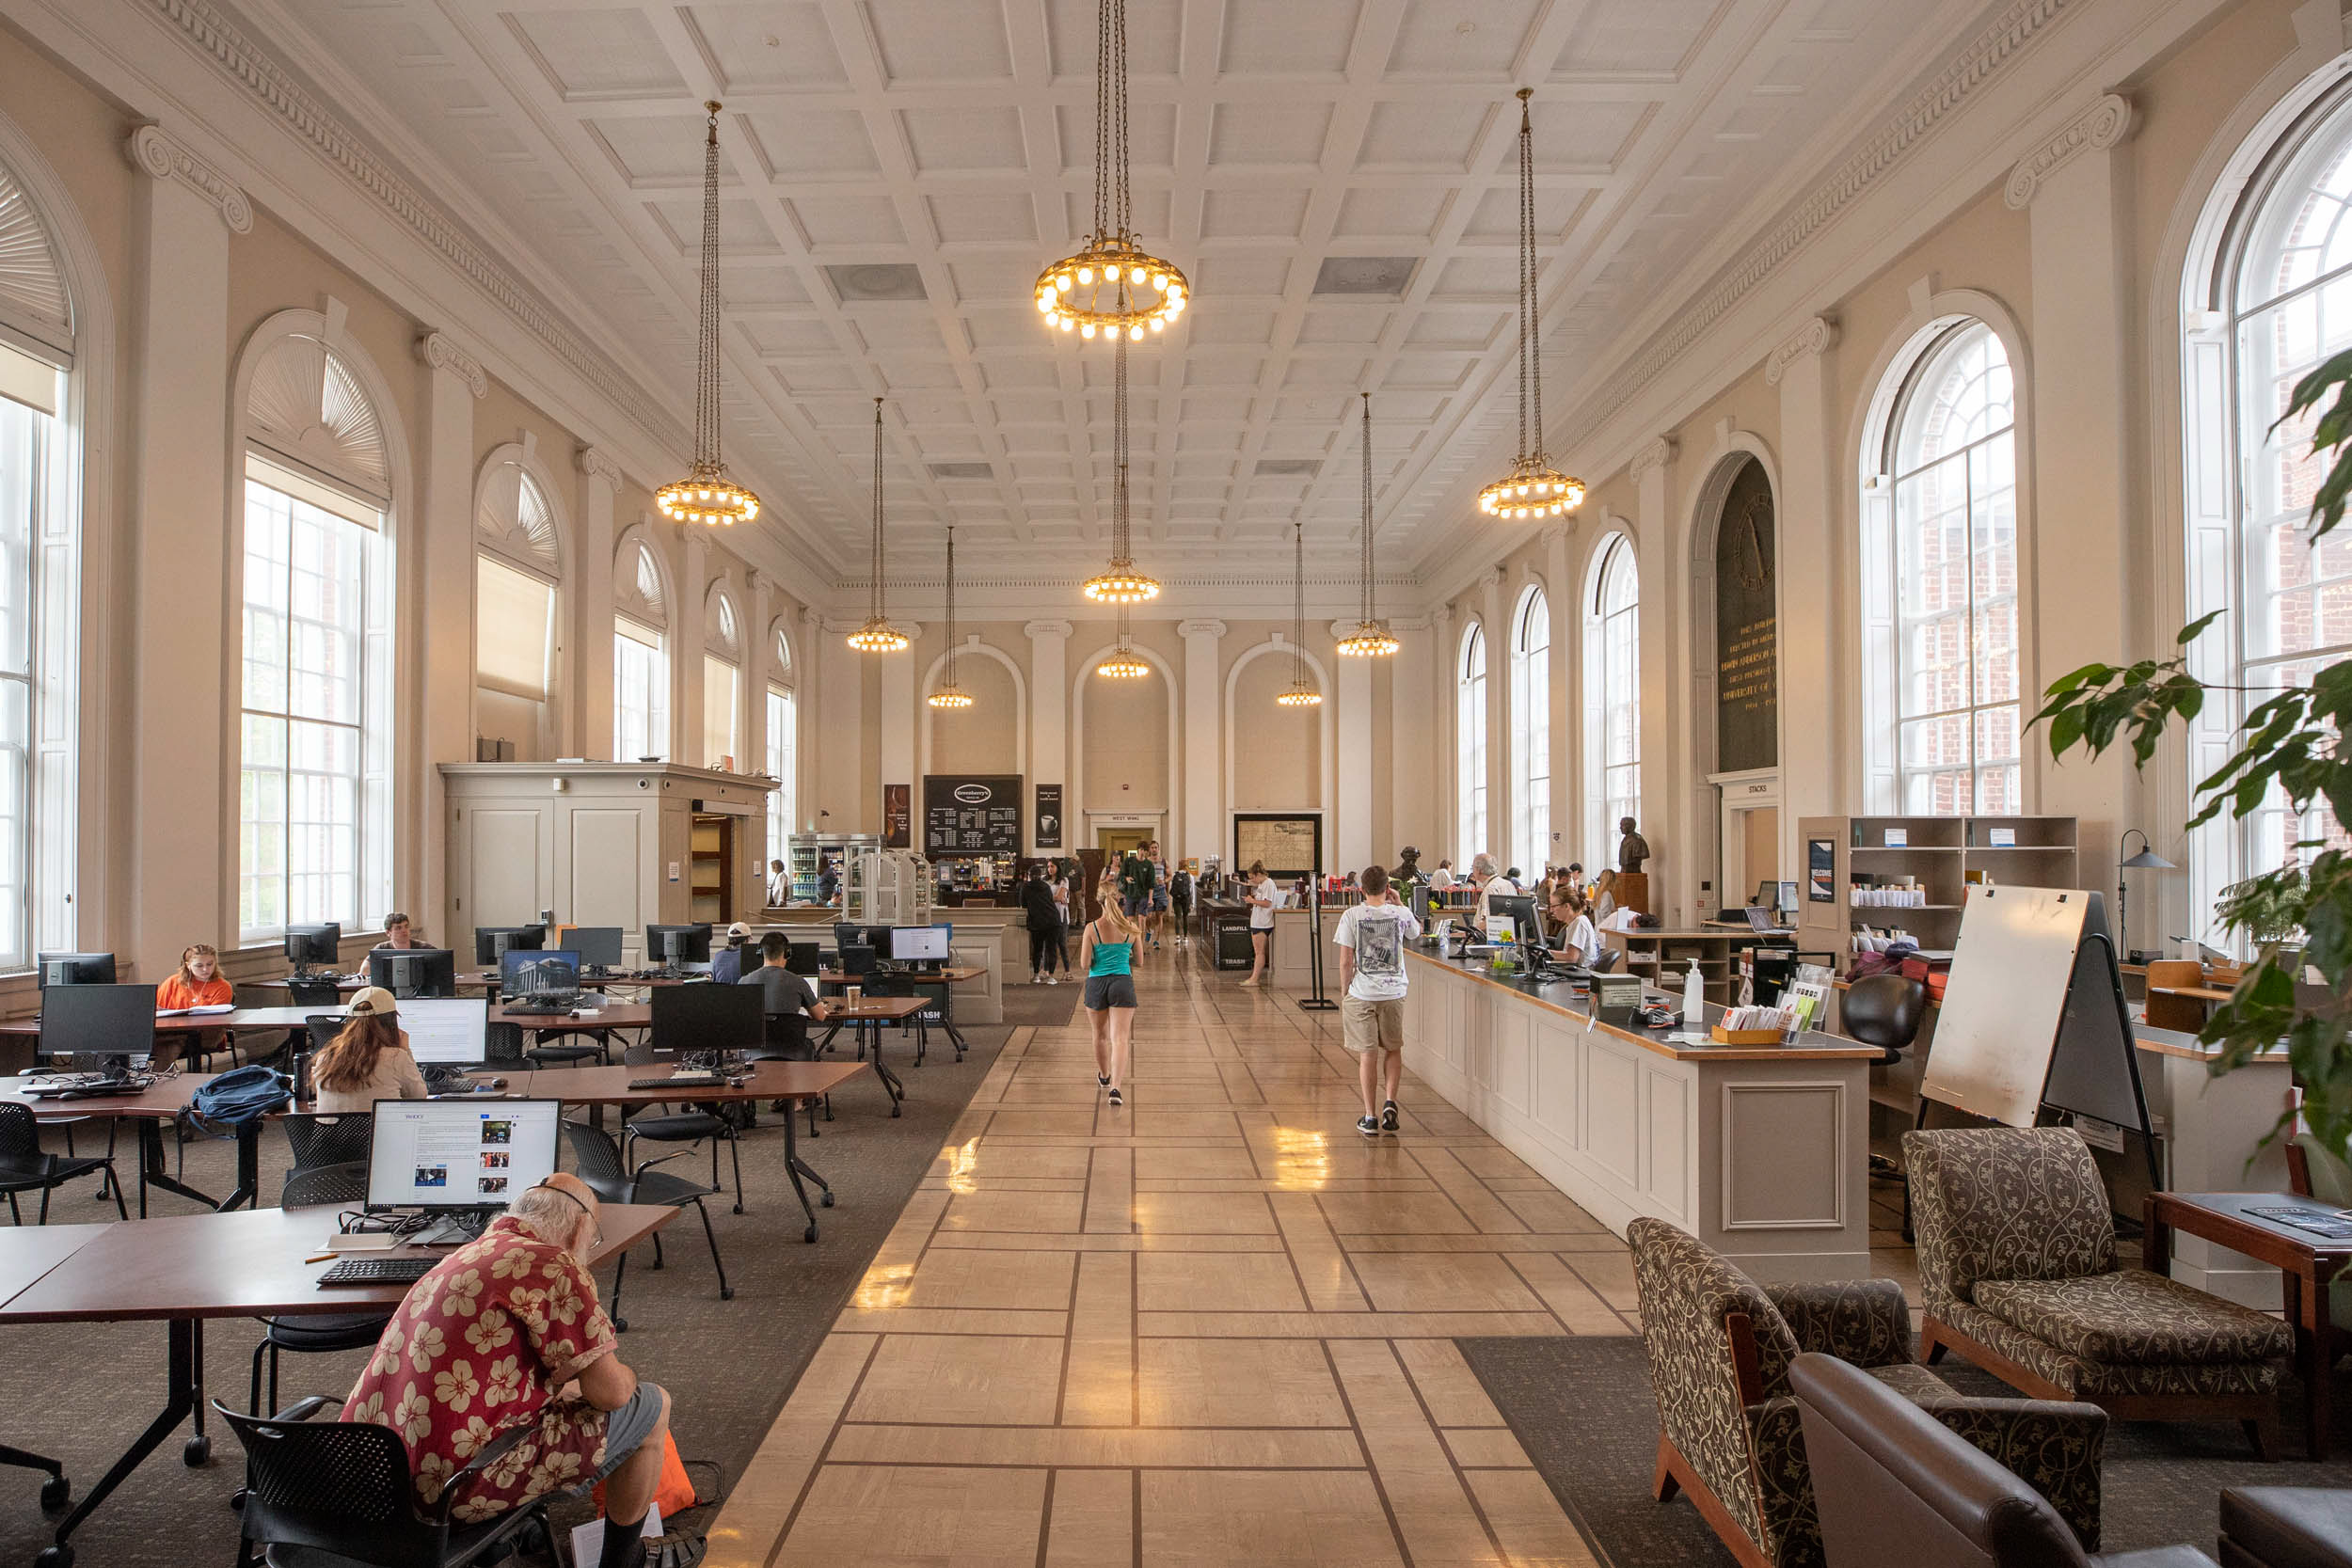 The renovation will take advantage of natural light in ways Alderman Library's Memorial Hall does now.